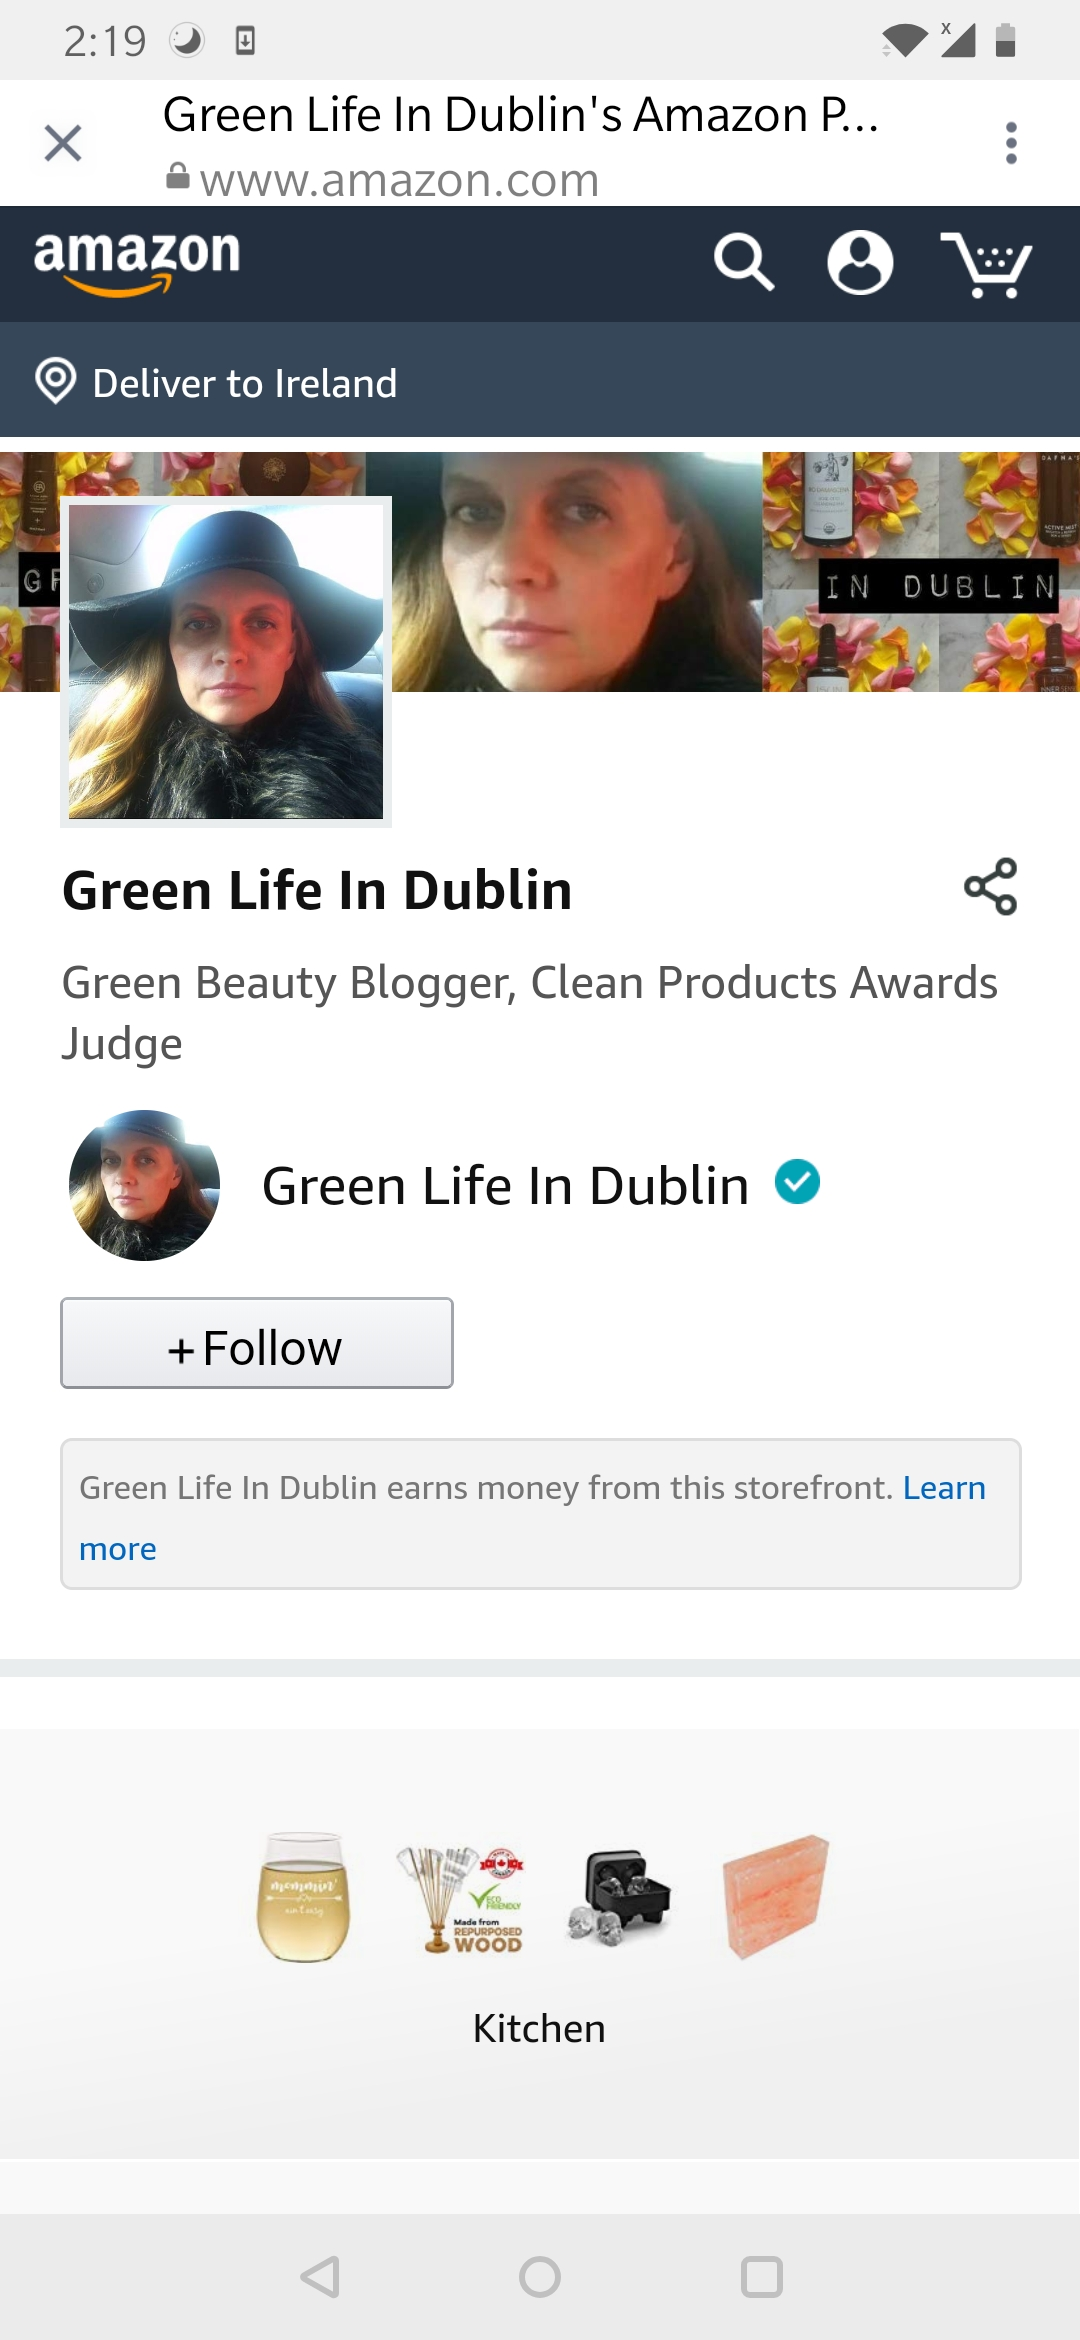 Shop Green Life In Dublin Amazon Store